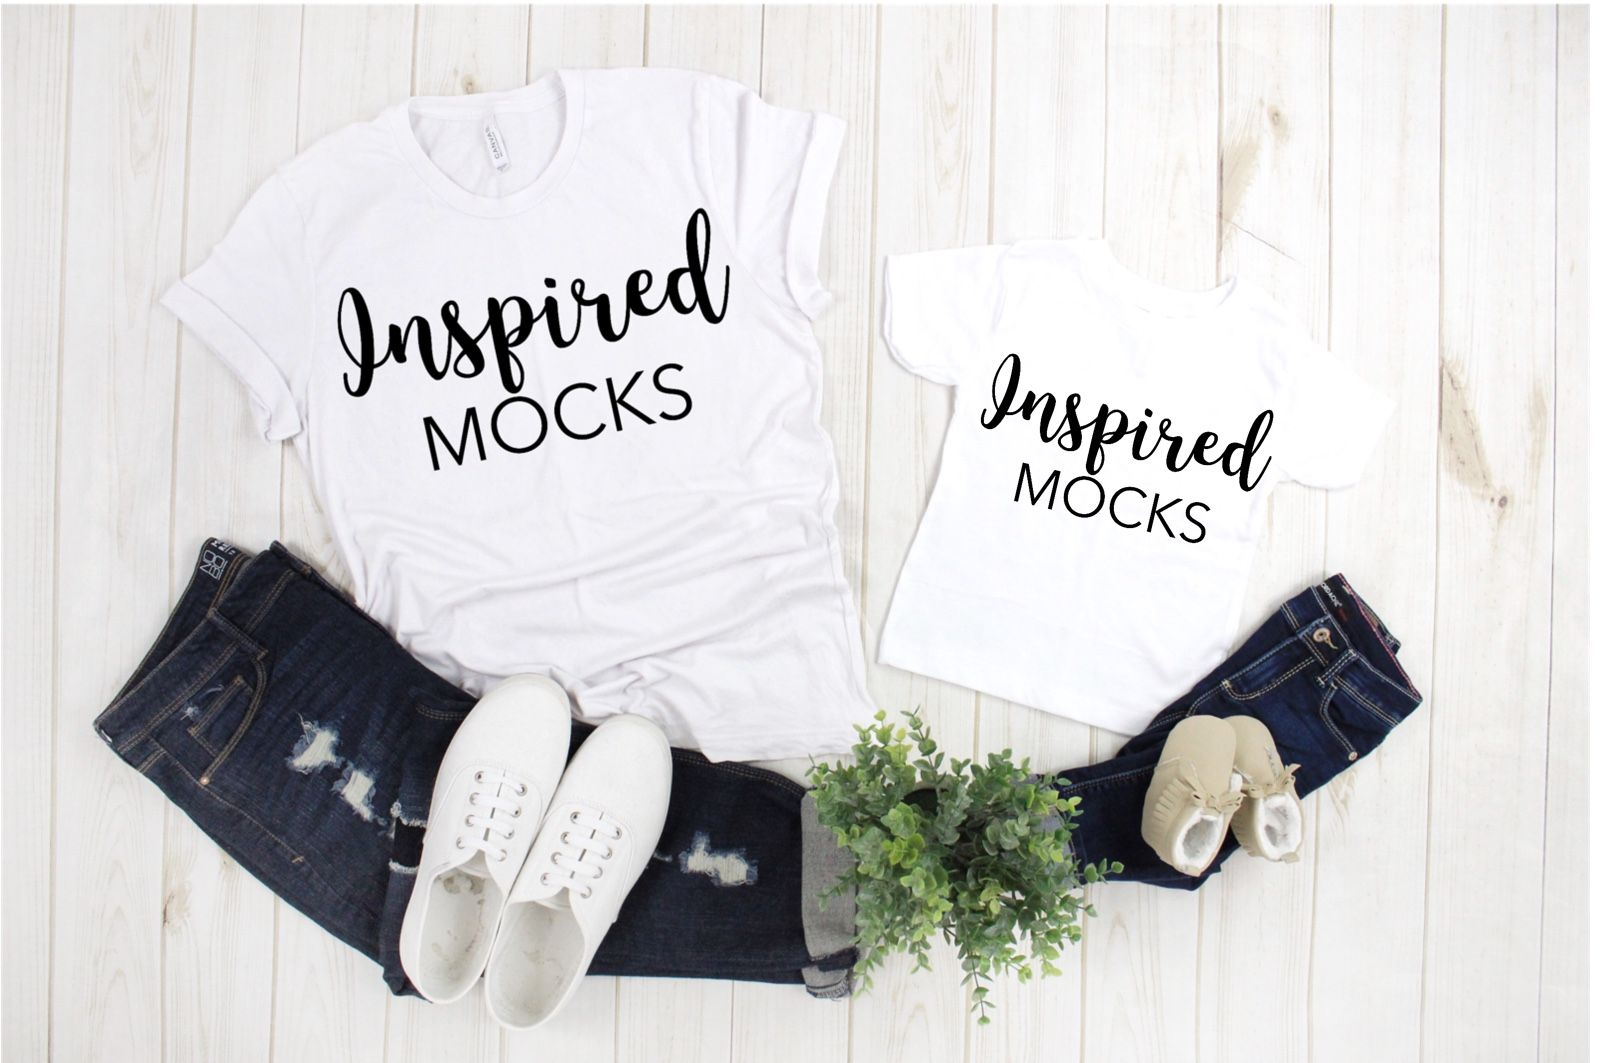 fec7b748e Bella Canvas 3001 3001T White Tshirt Mockup | Toddler Mockup | Family Flat  Lay Mockup | Mock Up | Bella Canvas Mockup | Mommy and Me Mockup